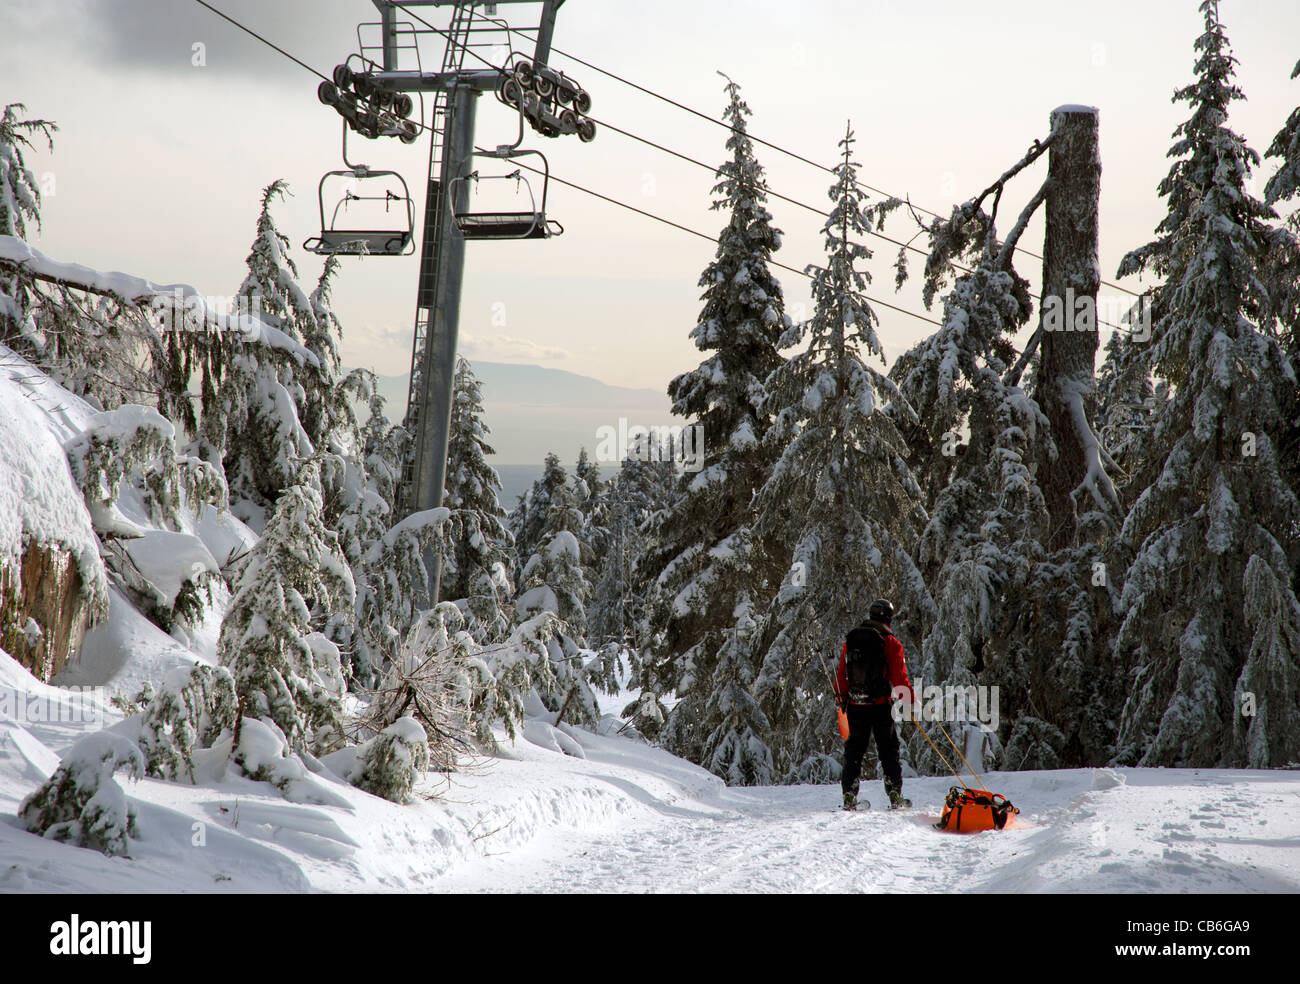 Rescue sled being towed near chairlifts at Grouse Mountain Ski Resort, Vancouver, British Columbia, Canada Stock Photo